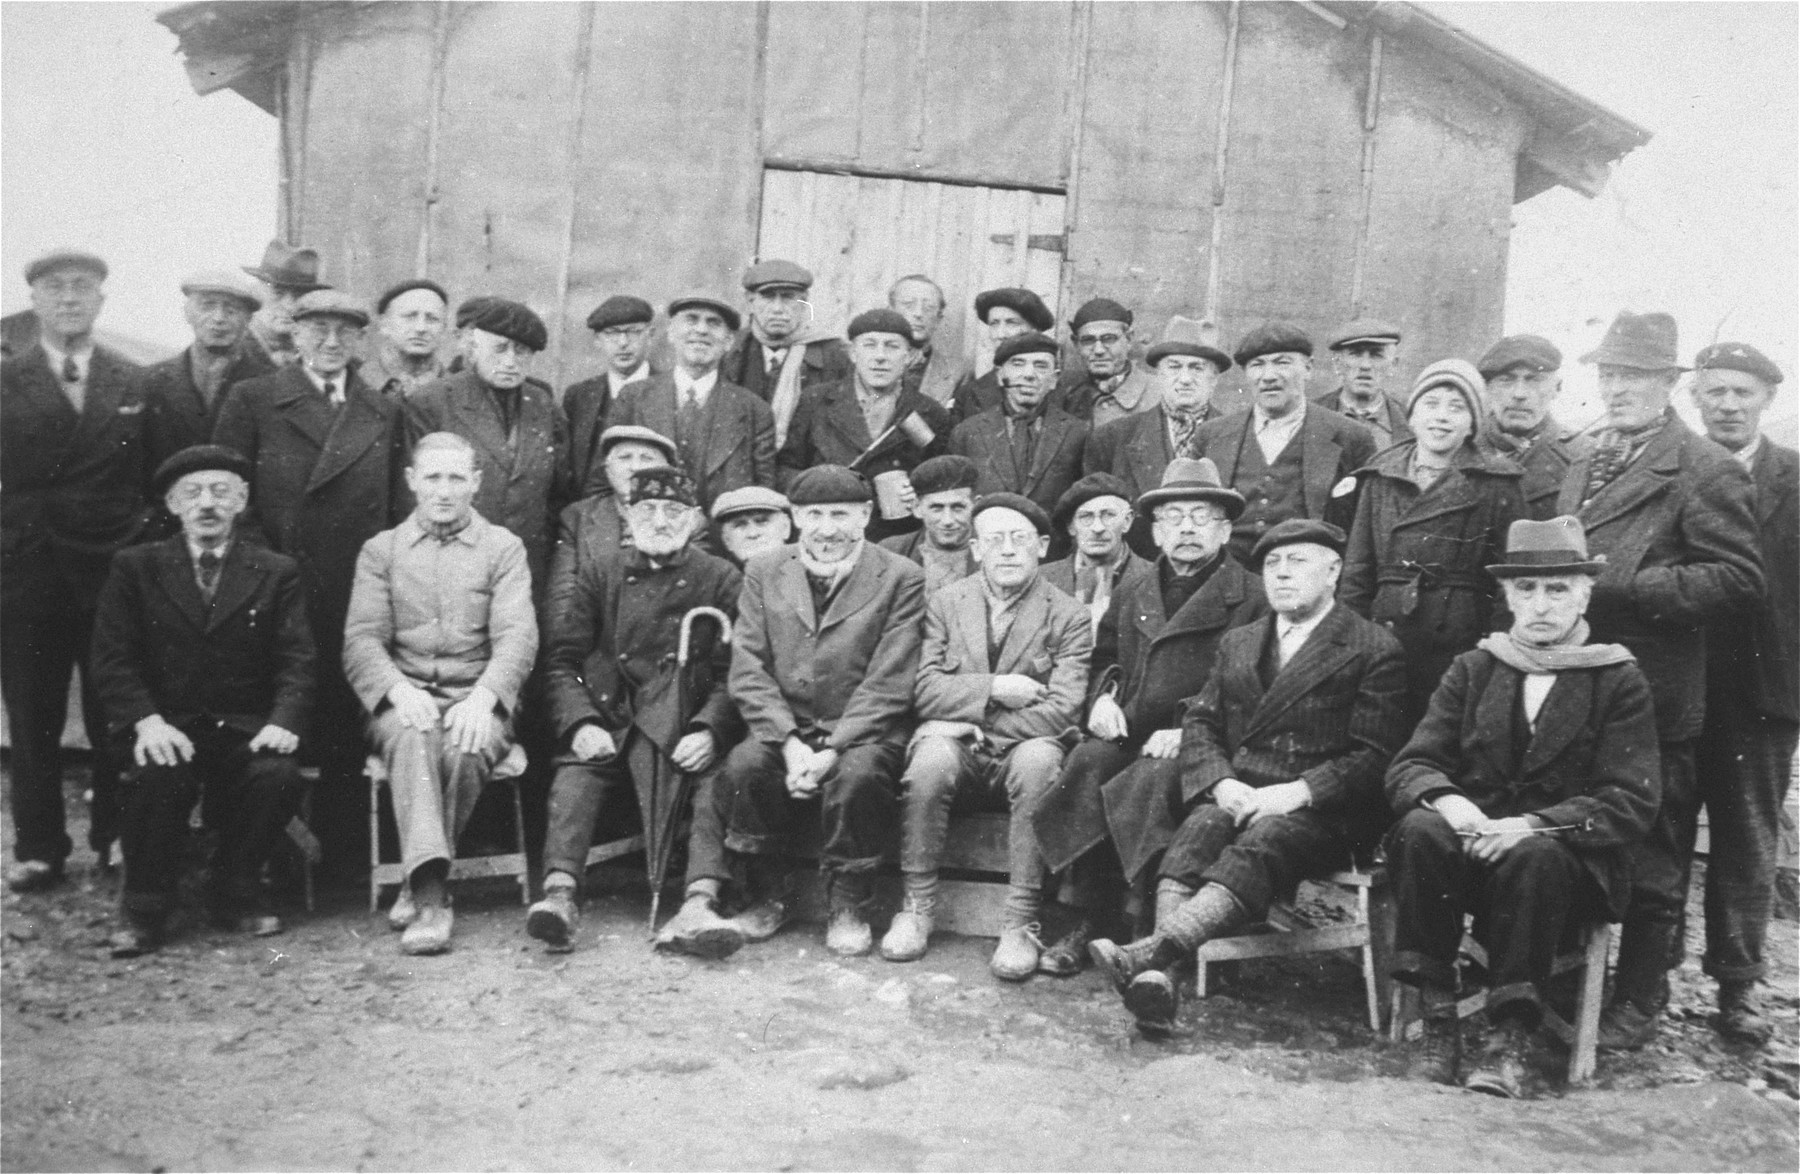 Group portrait of Jewish prisoners in the Gurs transit camp.    Samuel Liebermensch is pictured  at the center.  Hugo Mayer is seated on the lower right.  Siegfried Lindheimer is pictured in the first row , second from the left.